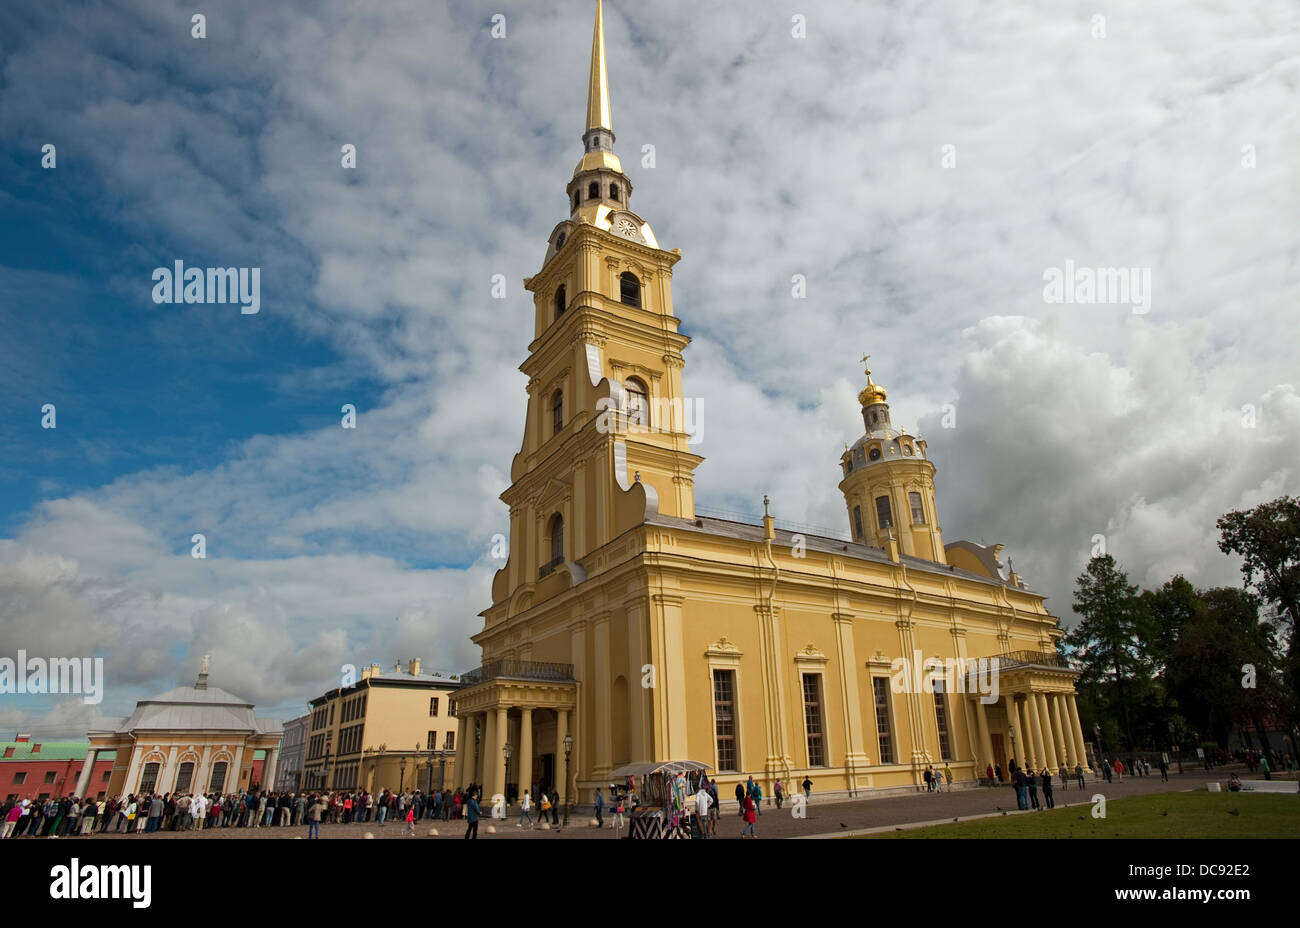 Saints Peter Paul Cathedral, St.Petersburg, Russia - Stock Image